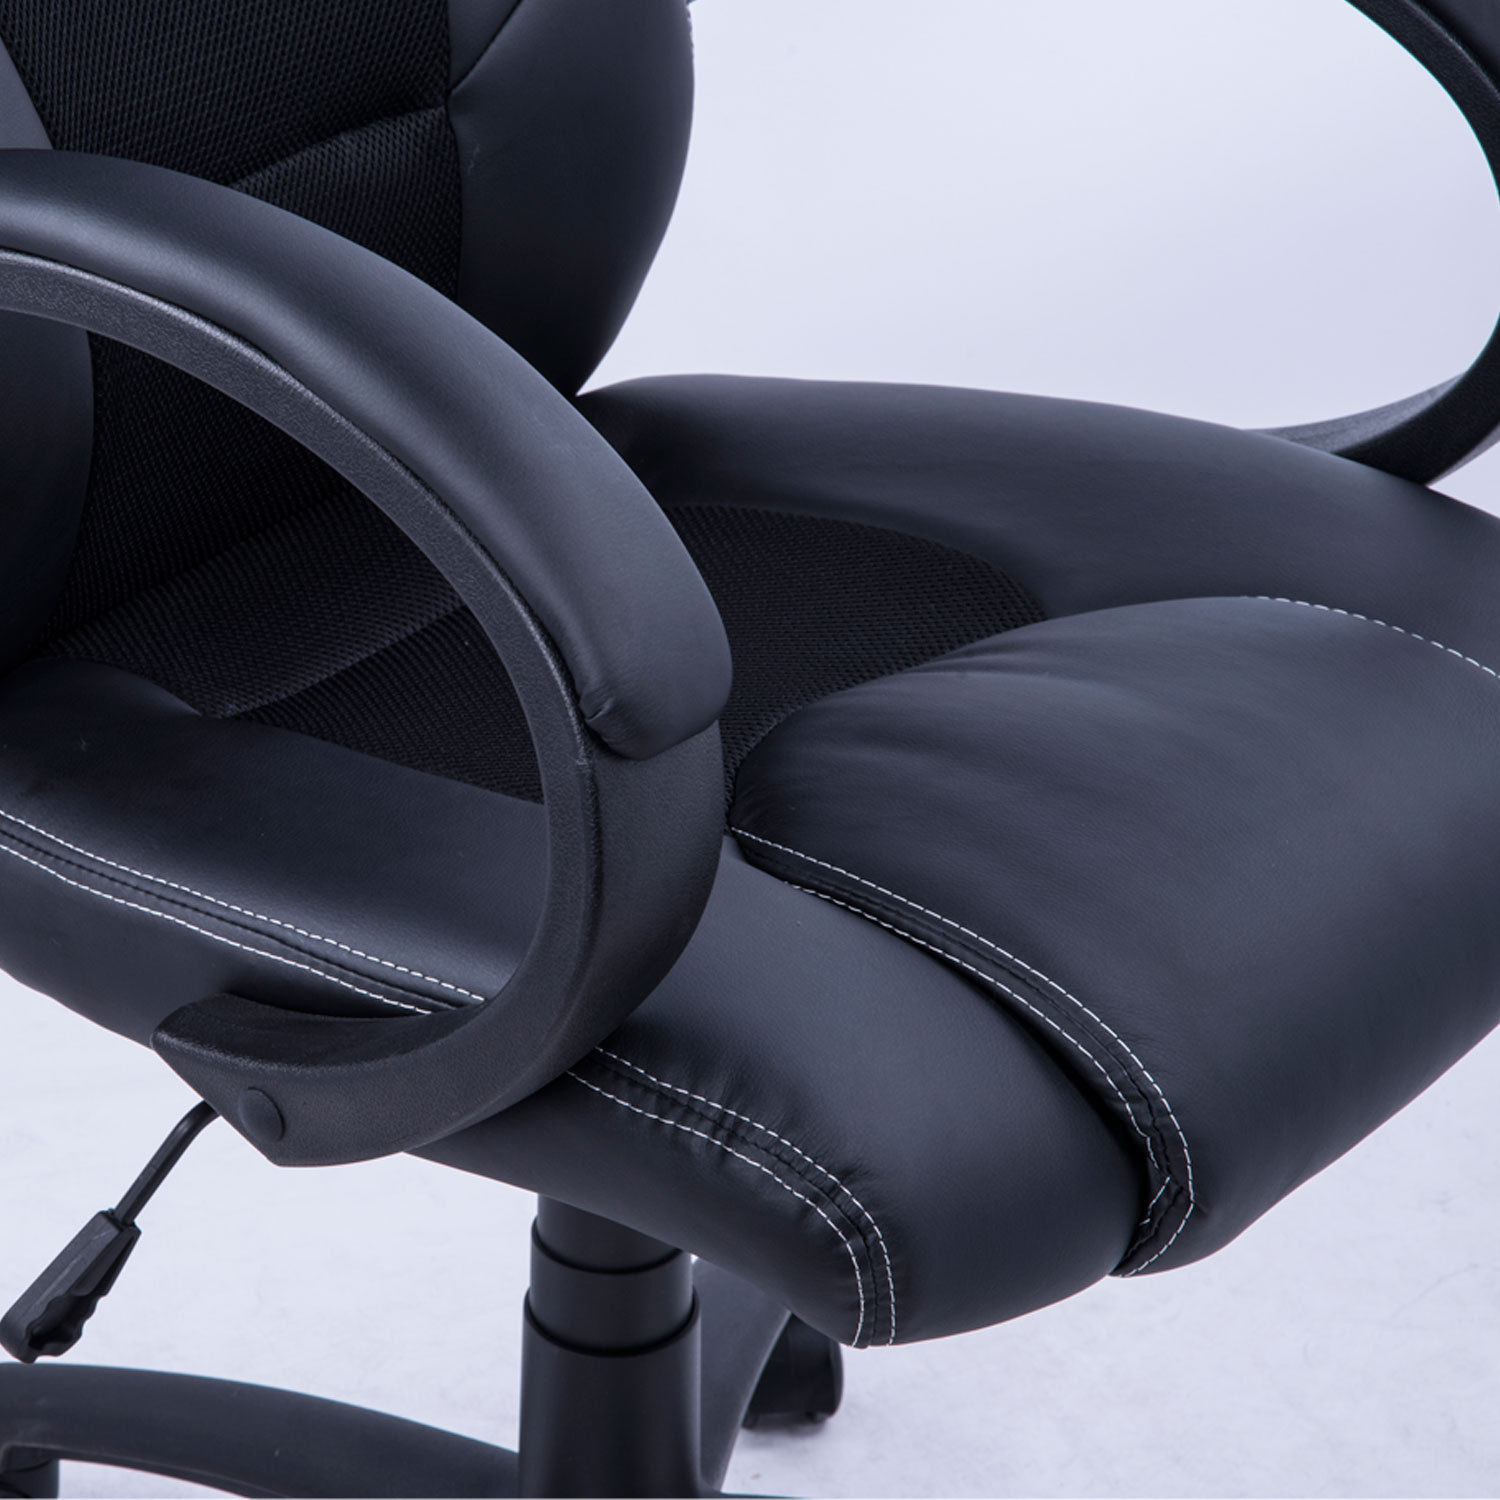 Racing Gaming Swivel Office Chair Pu Leather Computer Chairs Height Adjustable Ebay